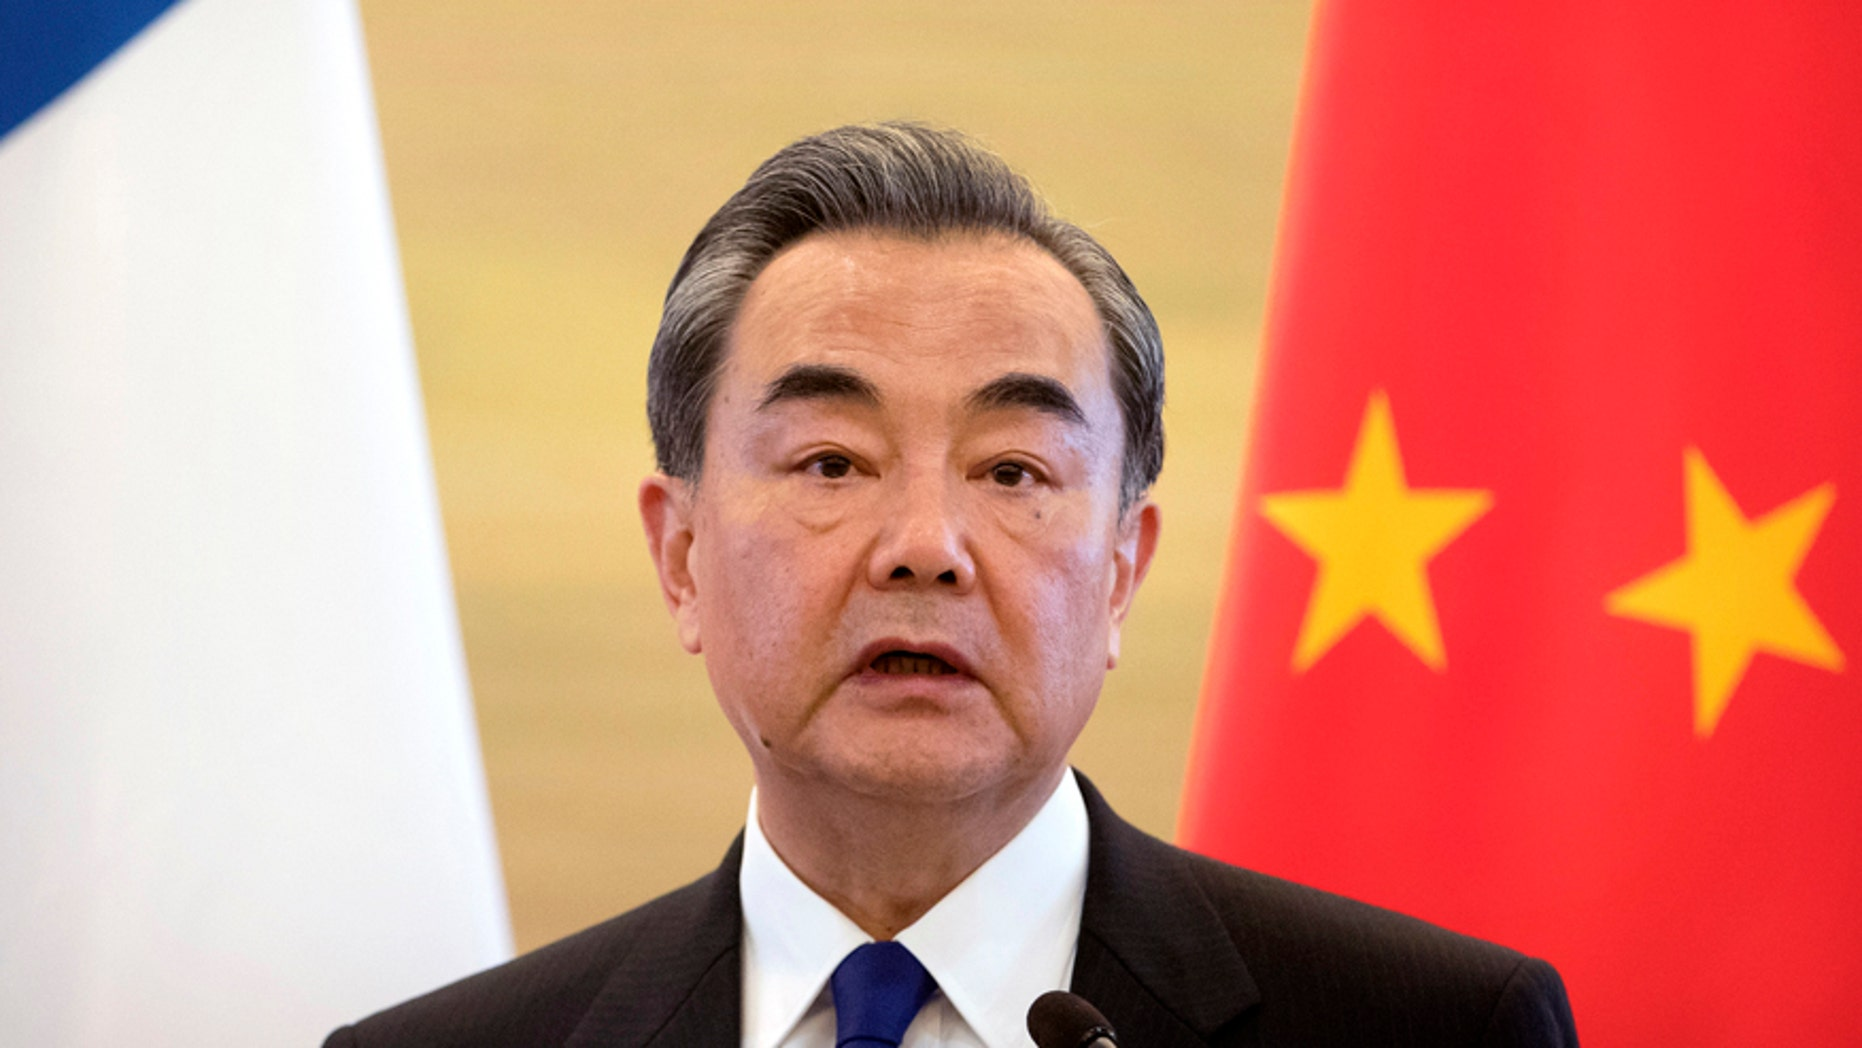 Chinese Foreign Minister Wang Yi speaks during a joint press conference with his French counterpart Jean-Marc Ayrault at the Ministry of Foreign Affairs in Beijing, Friday, April 14, 2017. (AP Photo/Mark Schiefelbein)